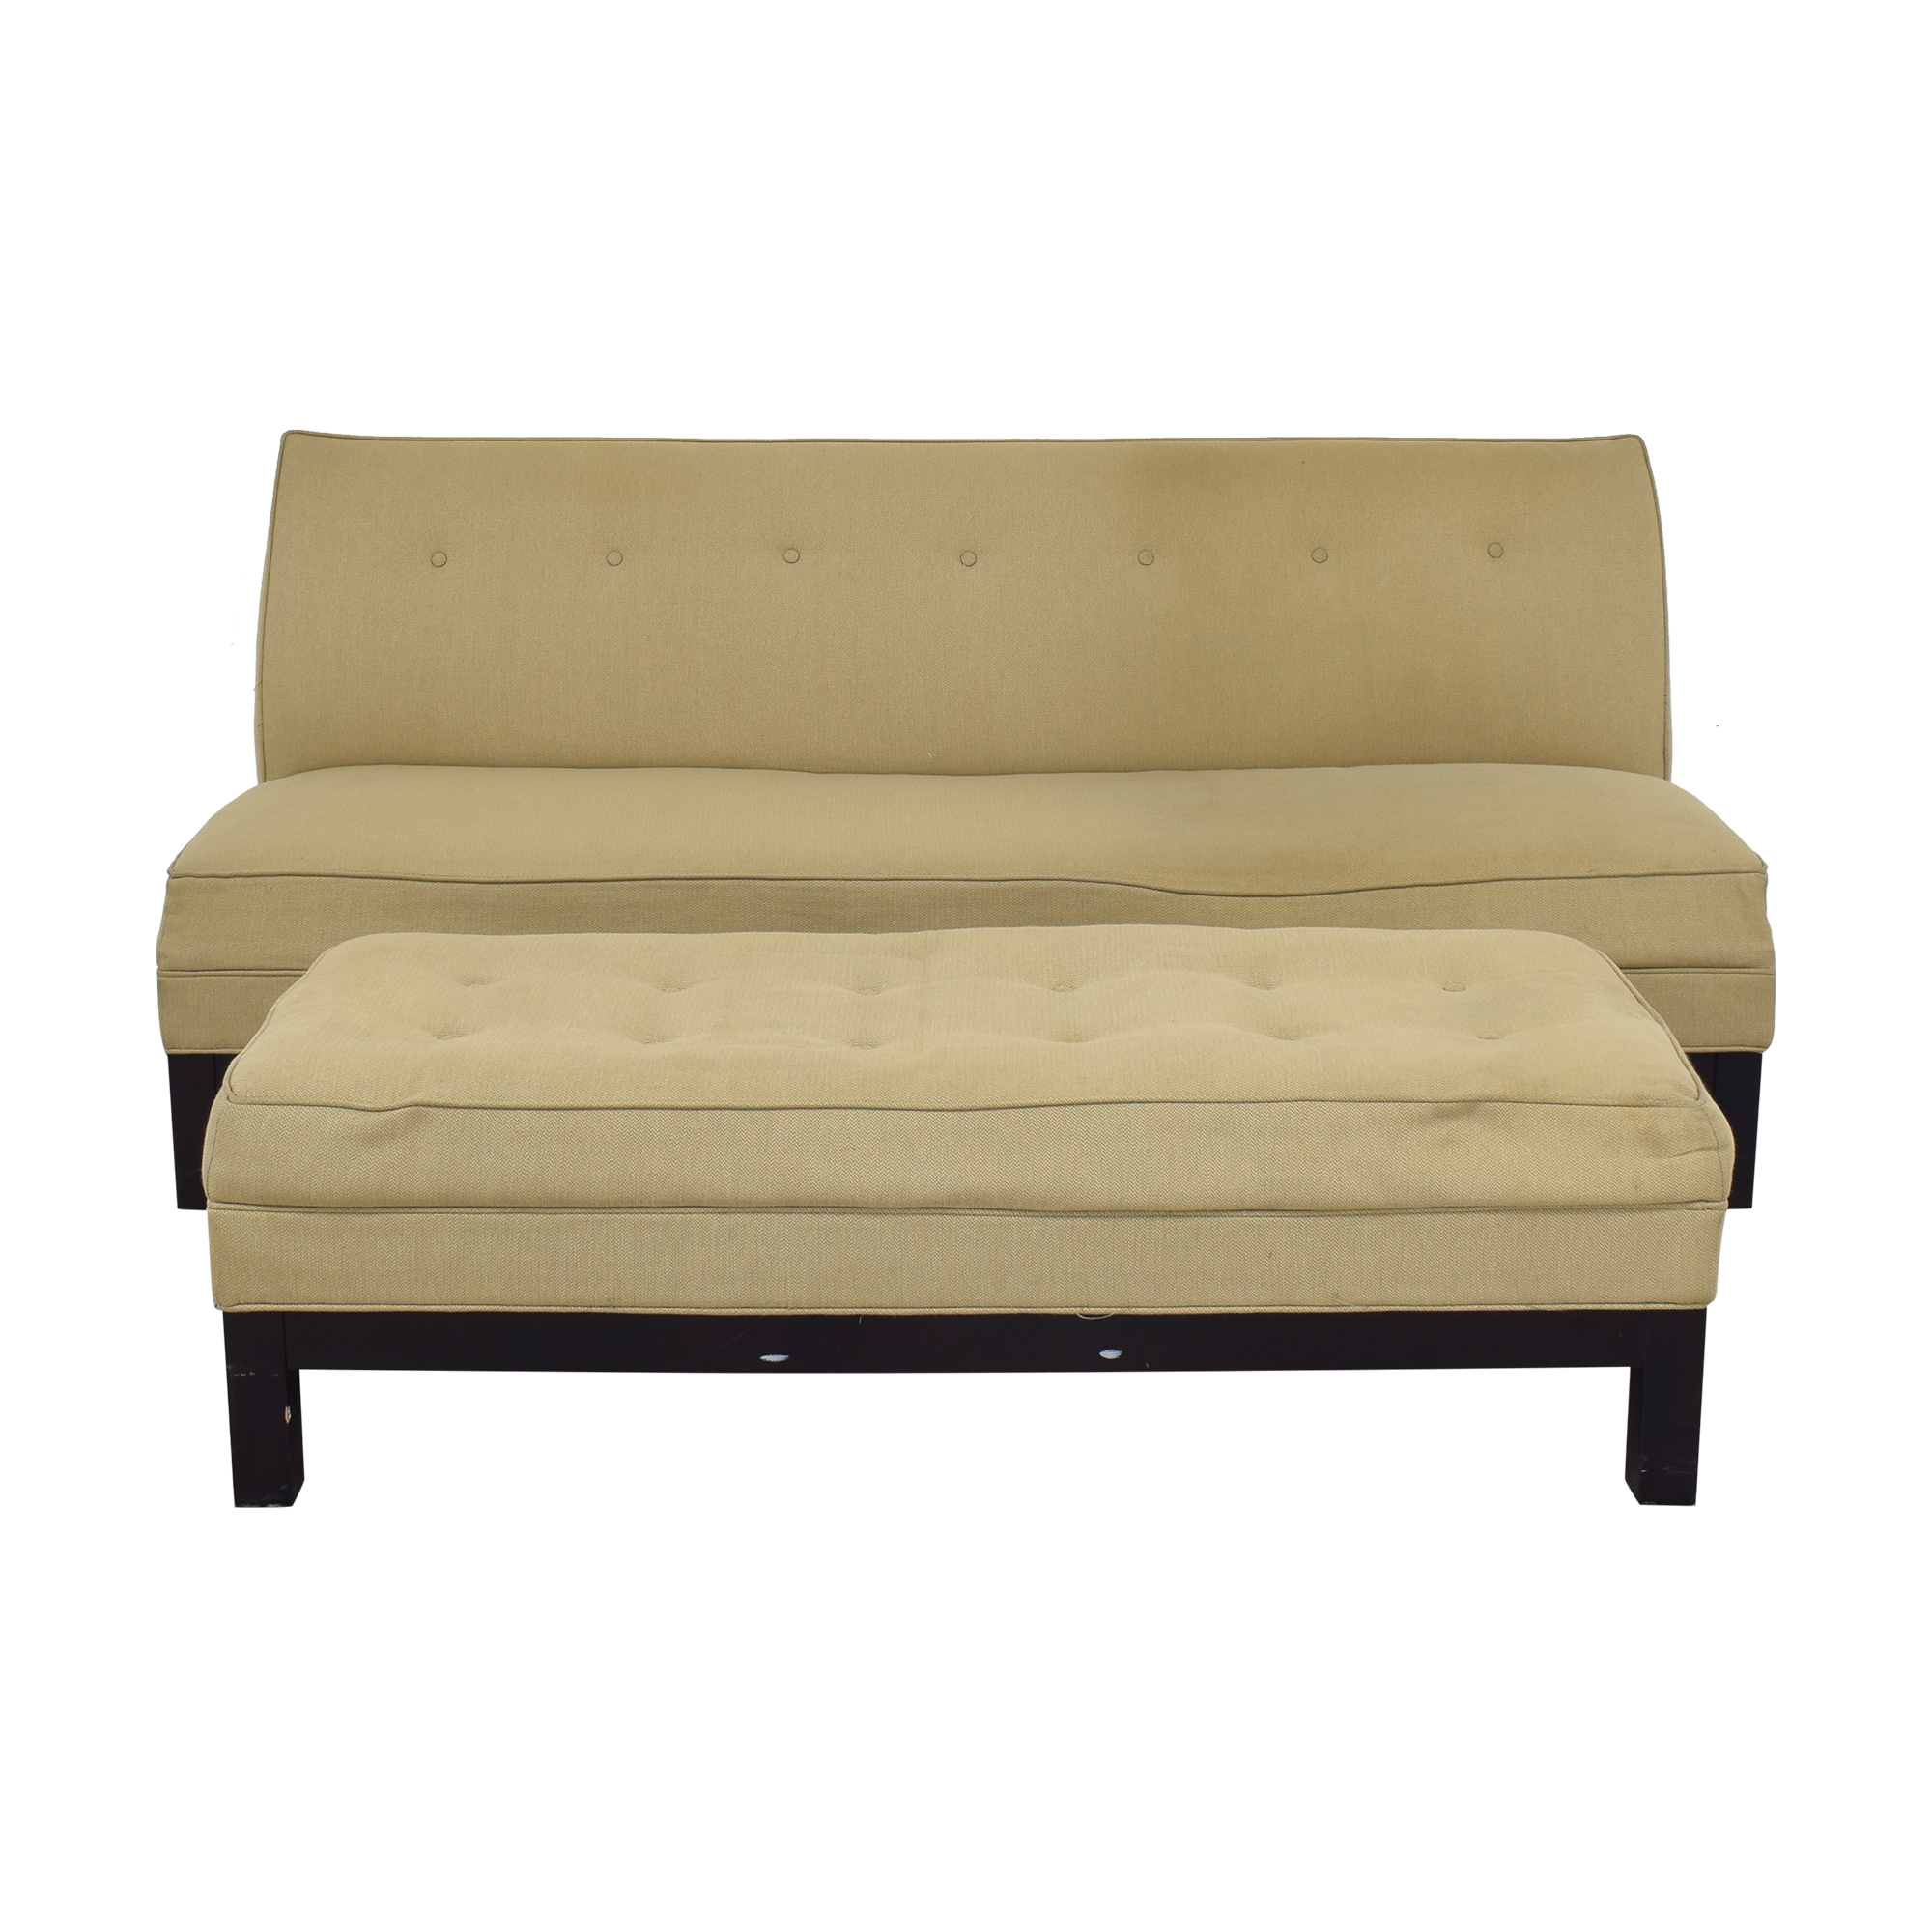 Restoration Hardware Restoration Hardware by Mitchell Gold Sofa and Ottoman dimensions